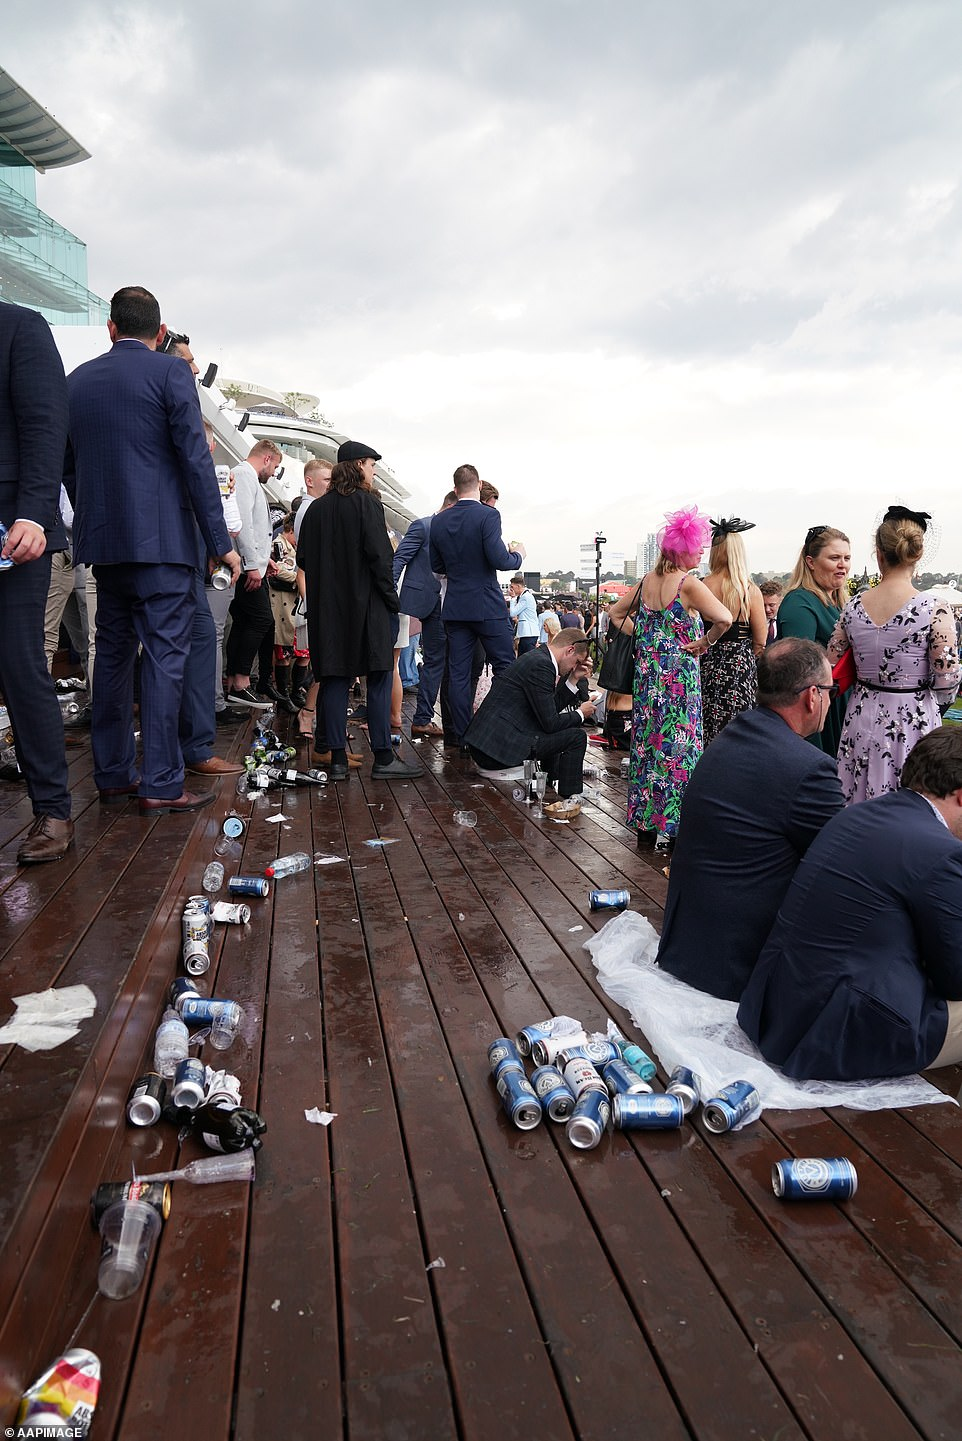 Despite the rain, punters still made the most of the eventthe iconic track at Flemington for the Melbourne Cup